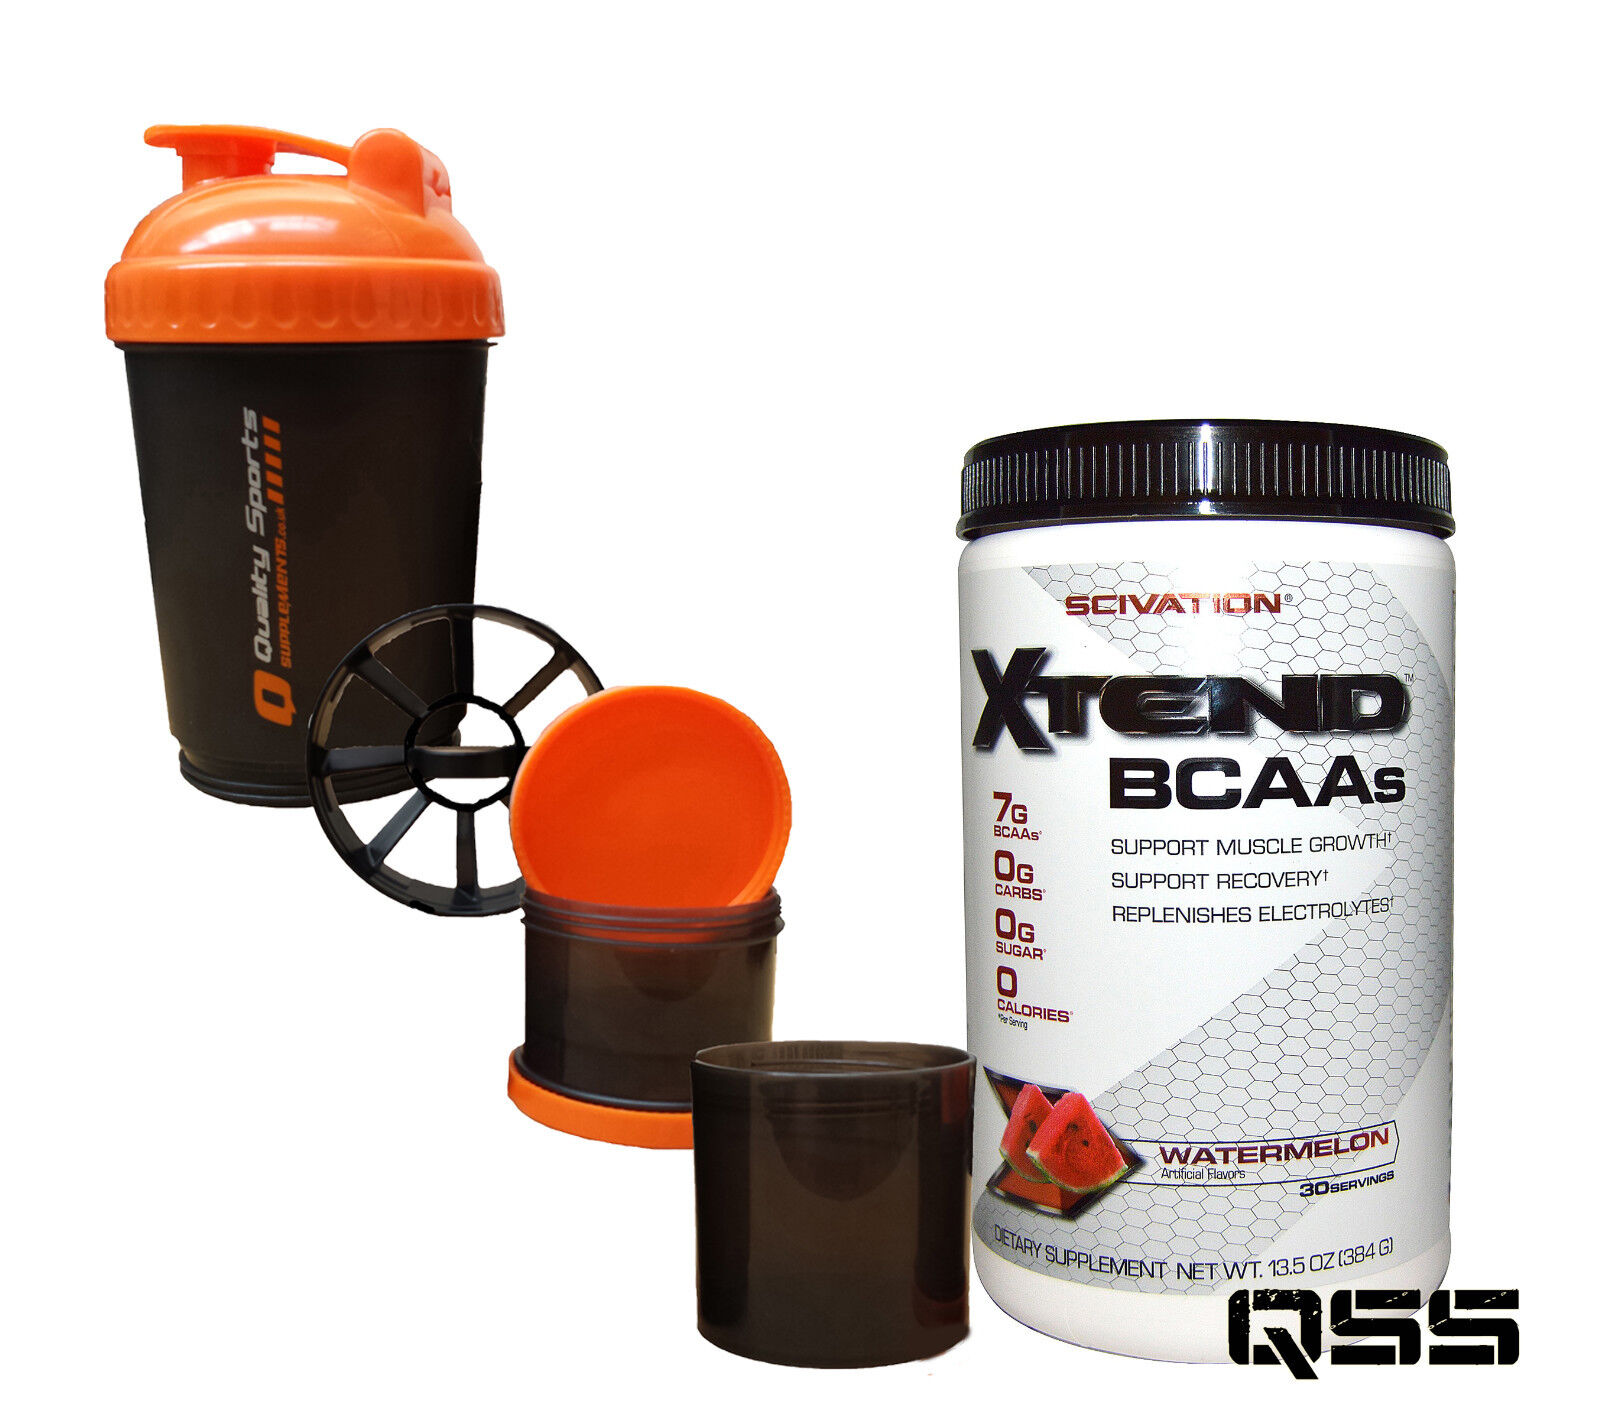 SCIVATION XTEND 30 SERVINGS BUILD LEAN MUCLE BURN FAT RECOVERY PUMP + SMART SHK